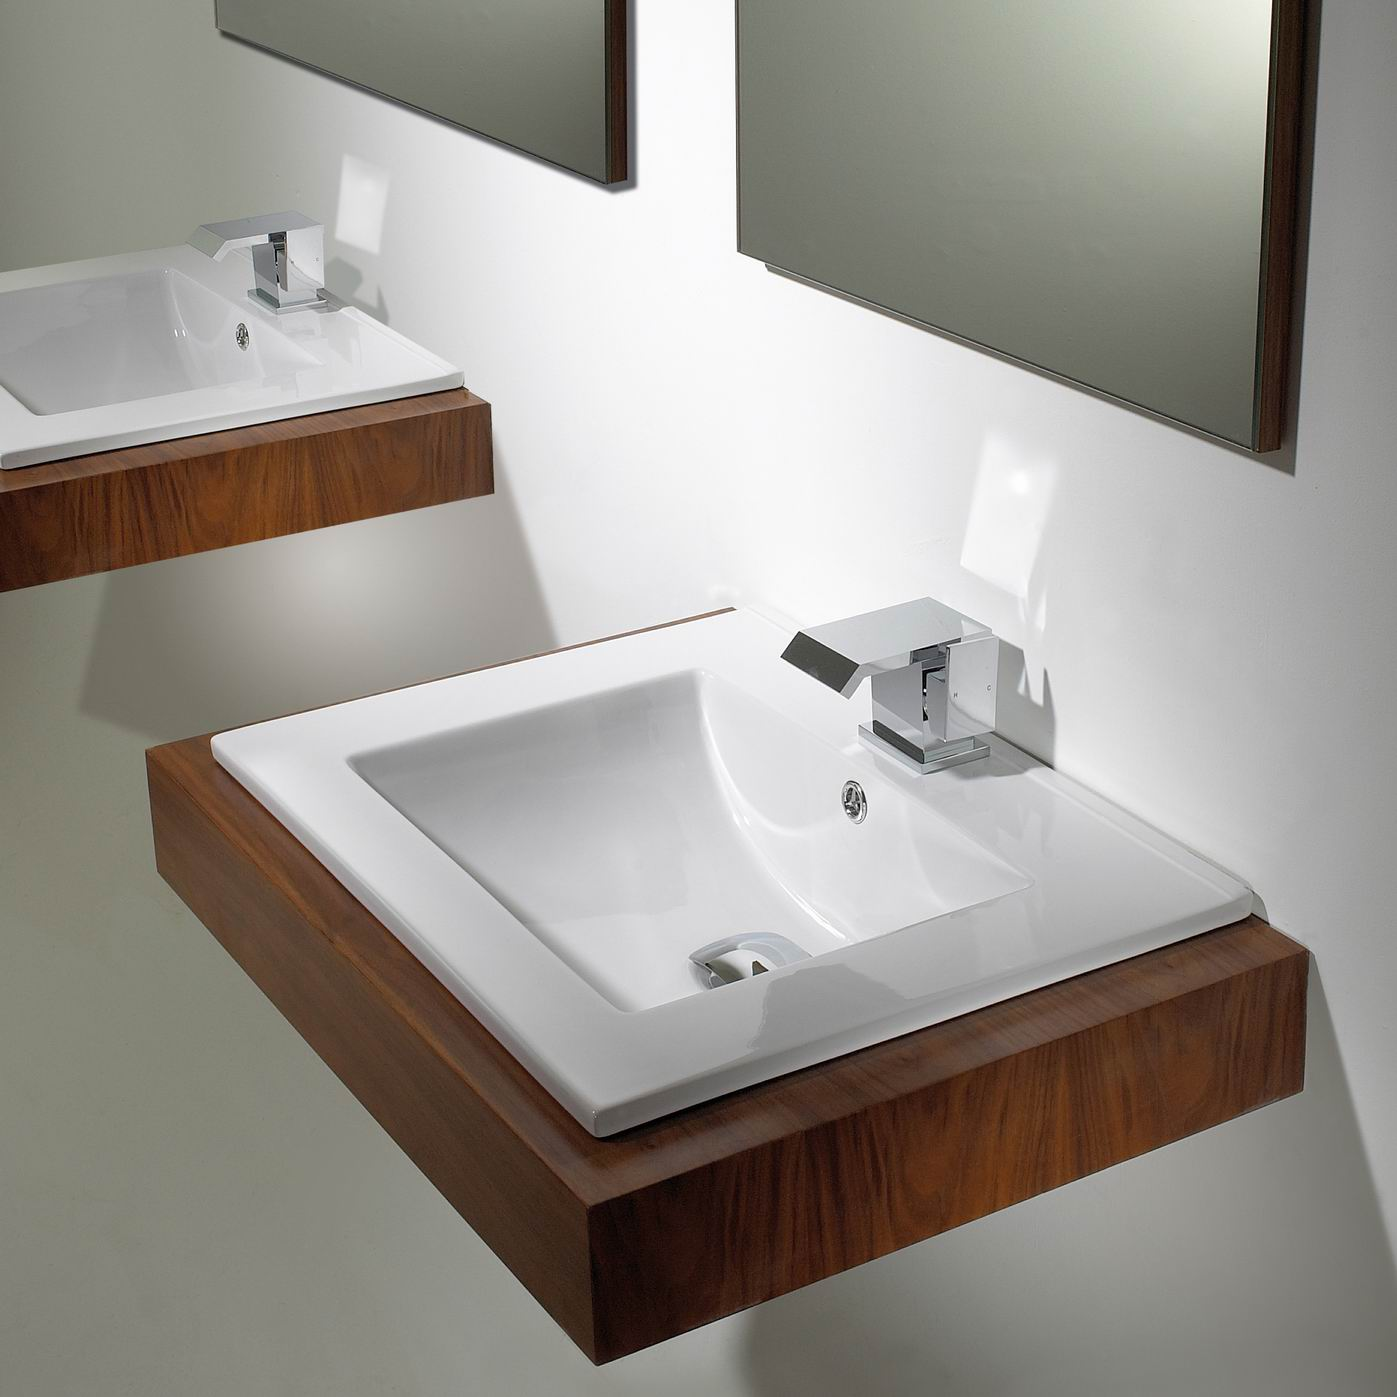 bathroom basins The Alternative Bathroom Blog